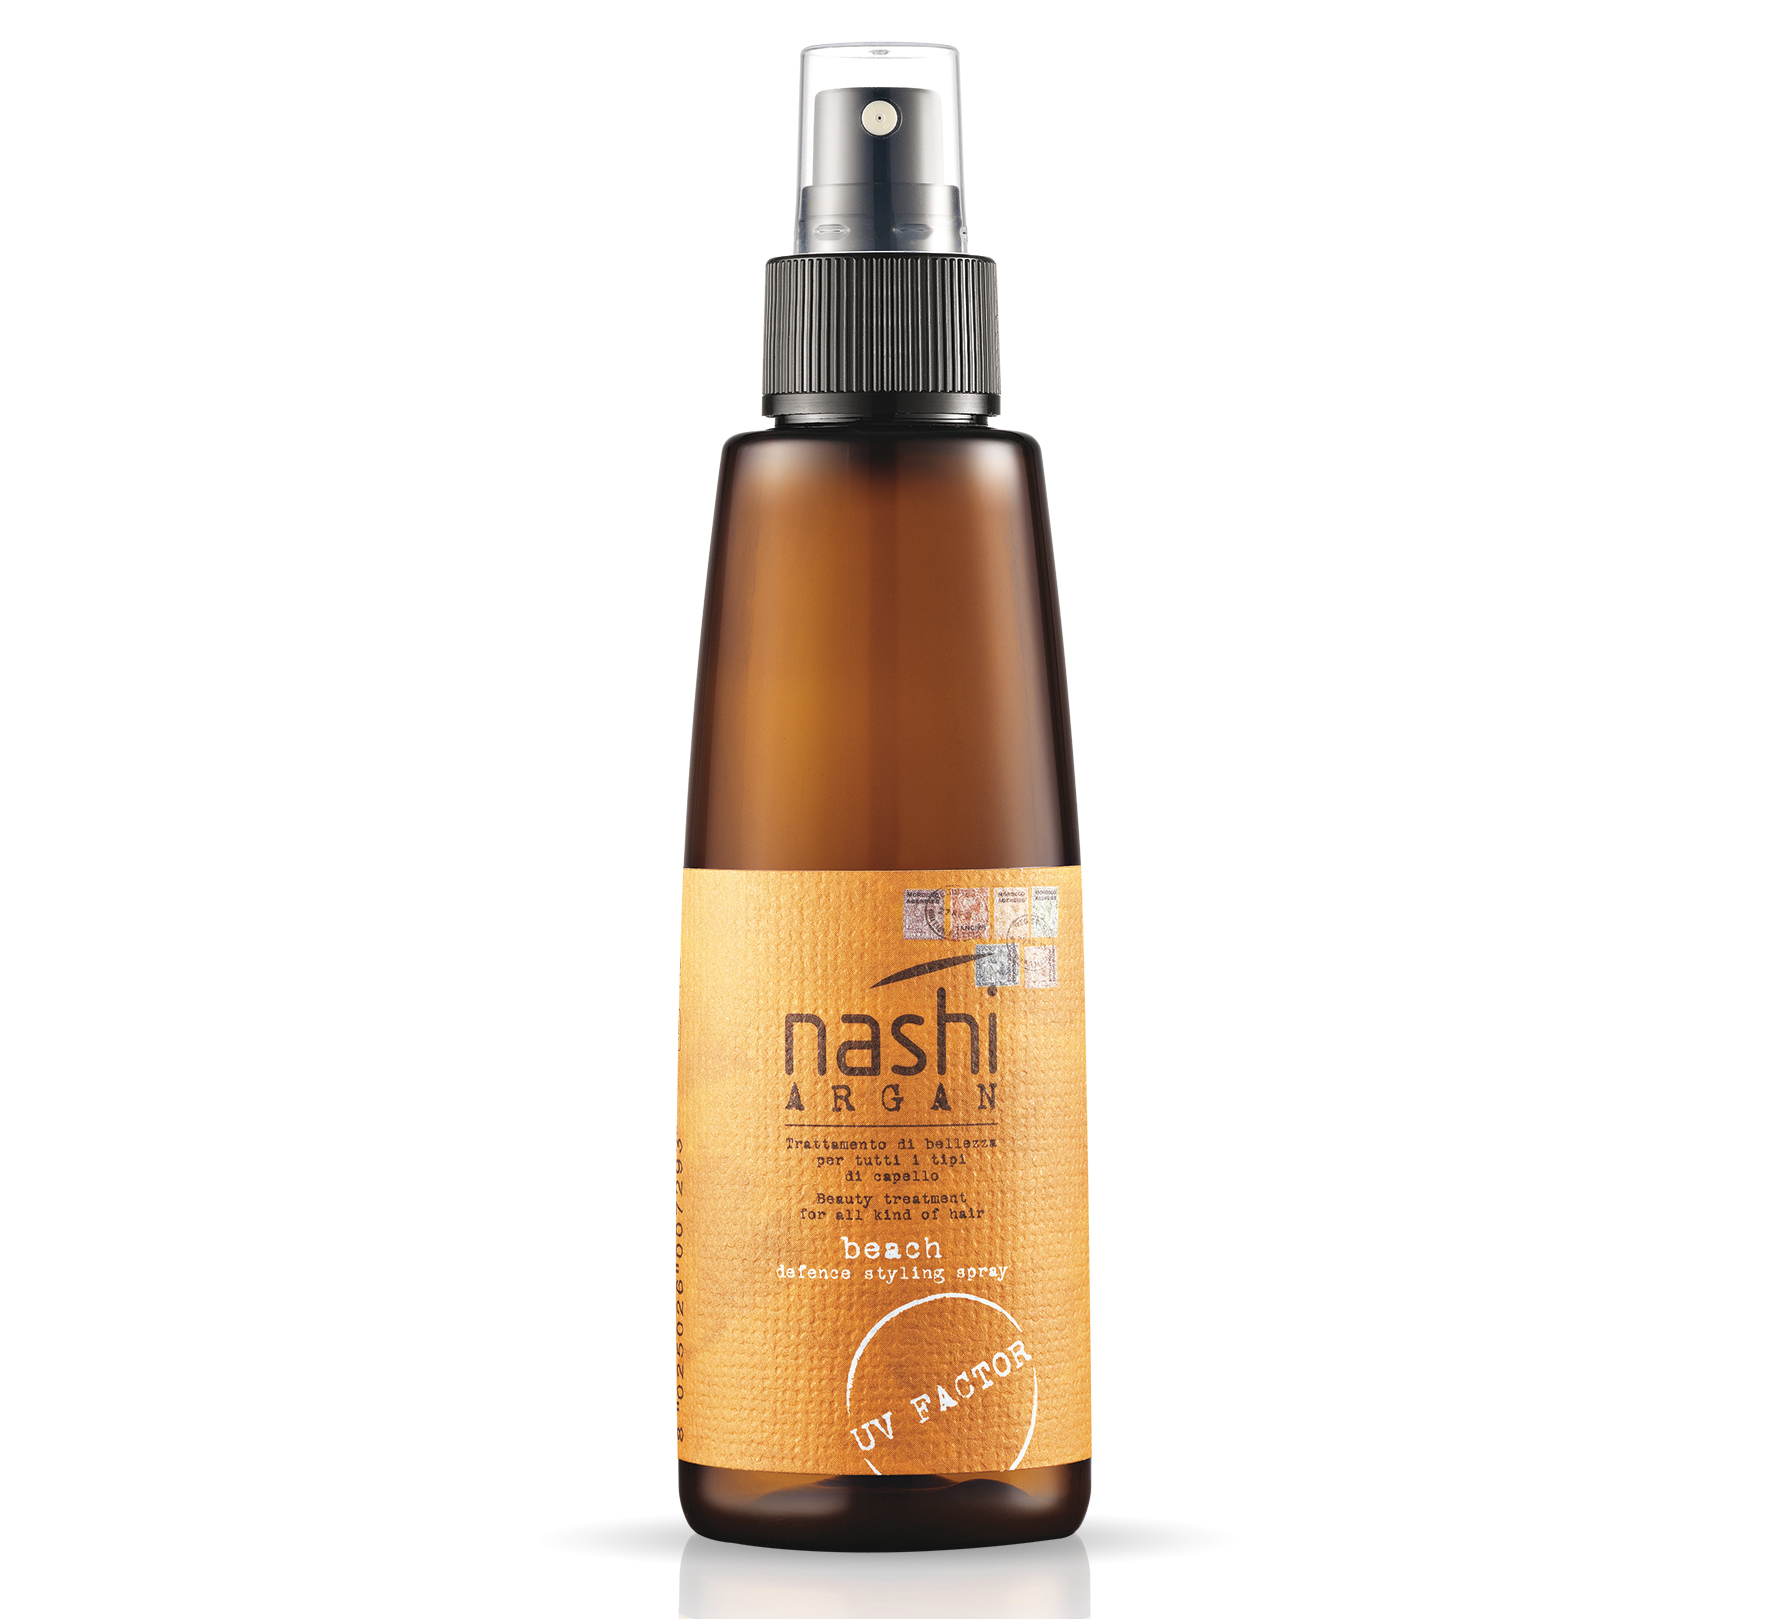 Nashi Argan Sun Beach Defence Styling Spray 150 ml